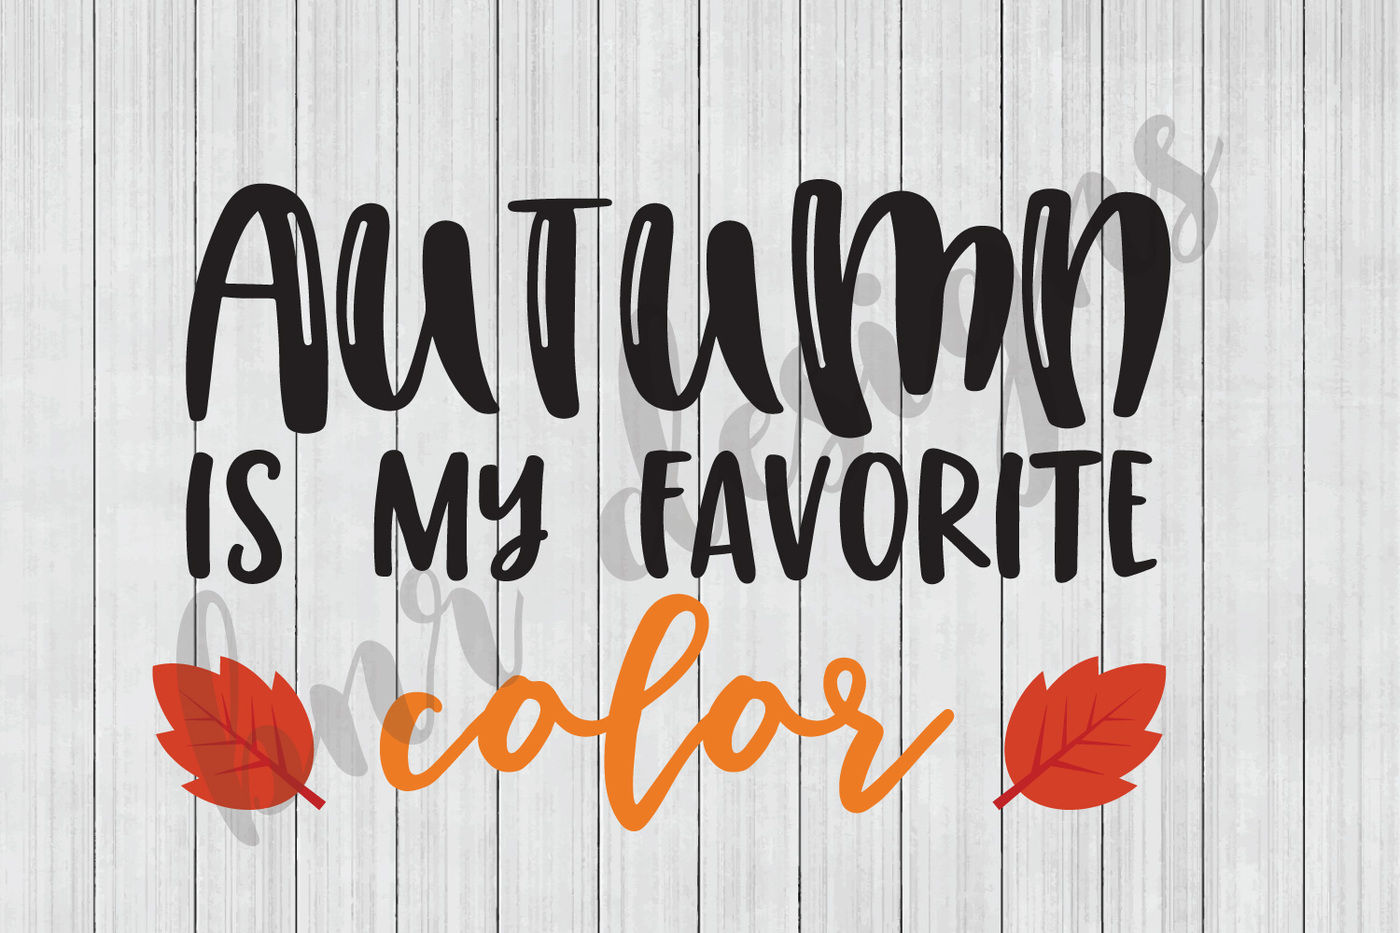 Fall Svg Autumn Svg Svg Files Dxf Files By Bnr Designs